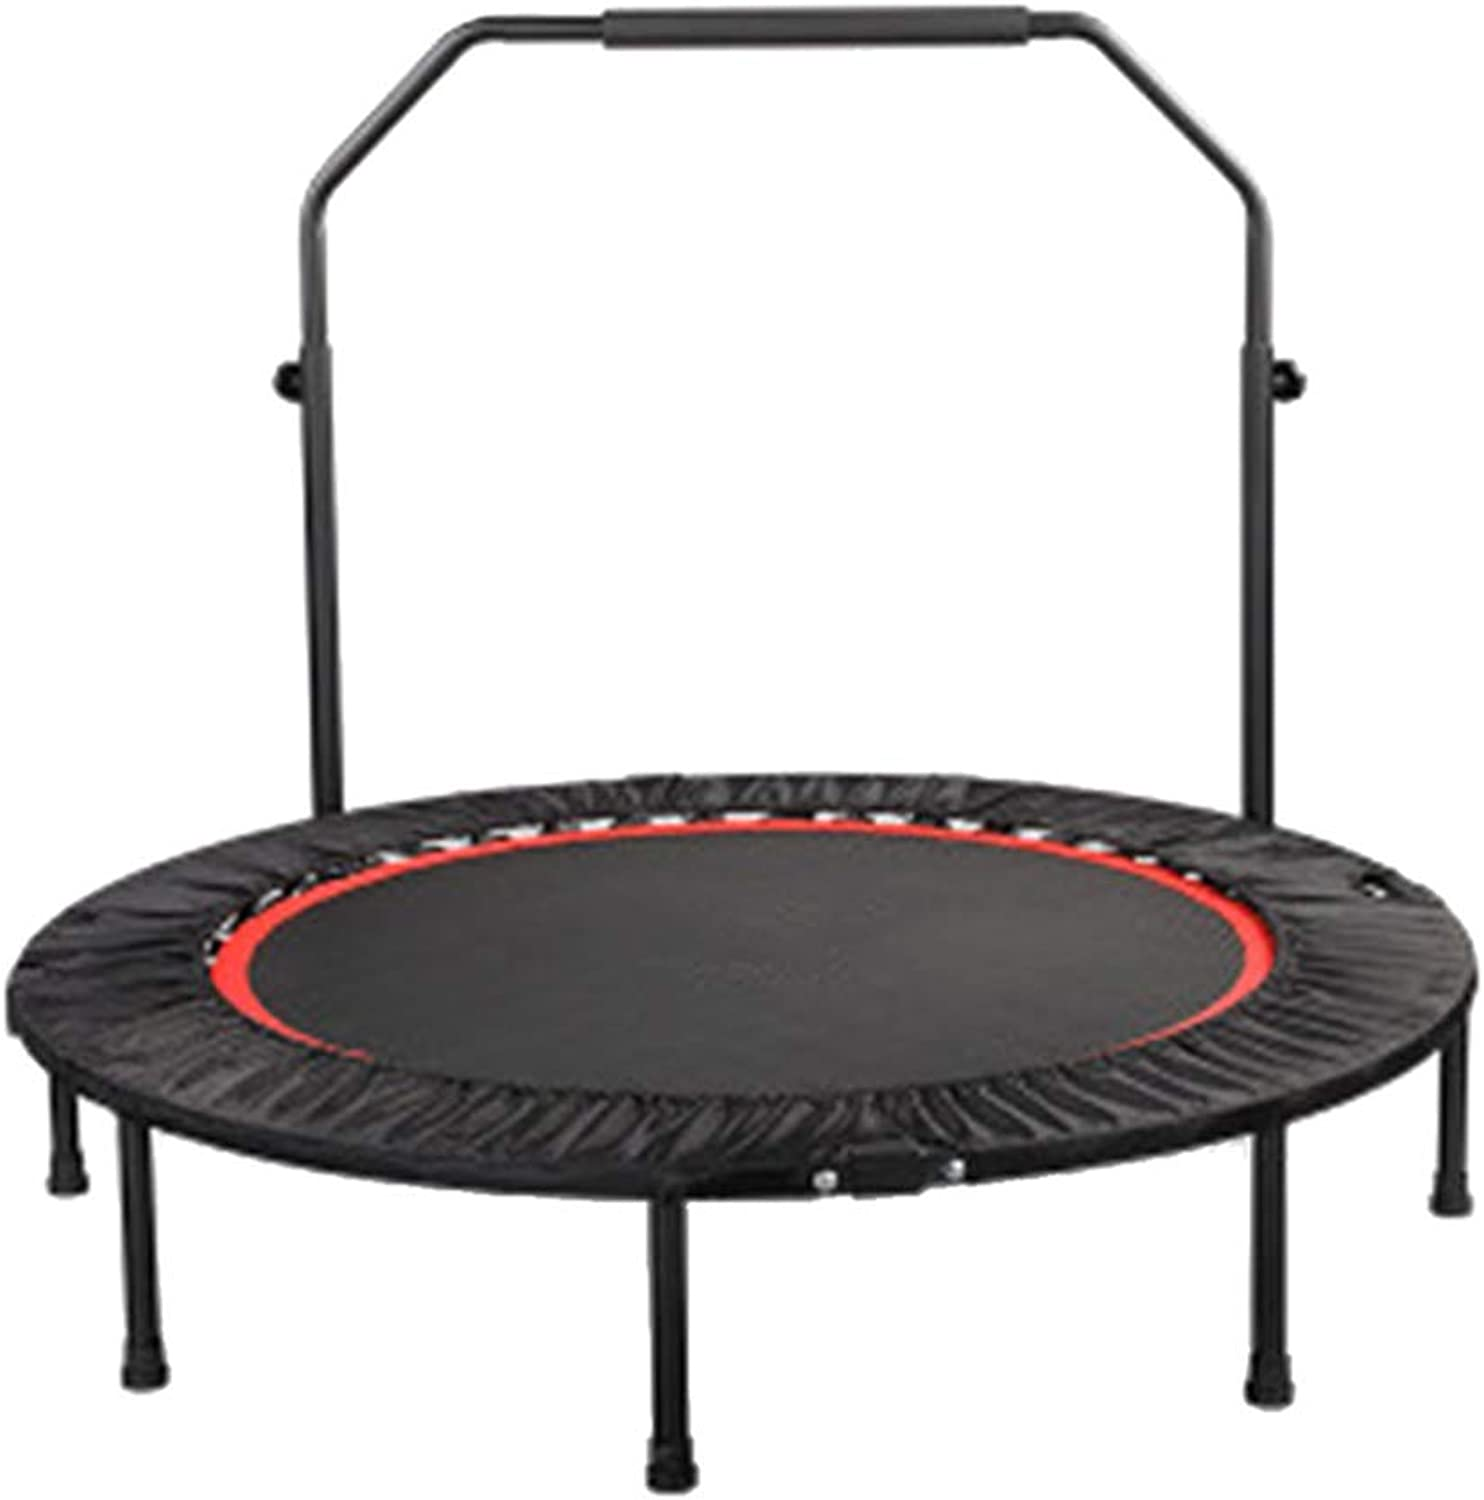 Trampolines 40 Inch with Adjustable Handrail, Folding Indoor Garden Workout Cardio Training for Kids Adults Max Load 440lbs